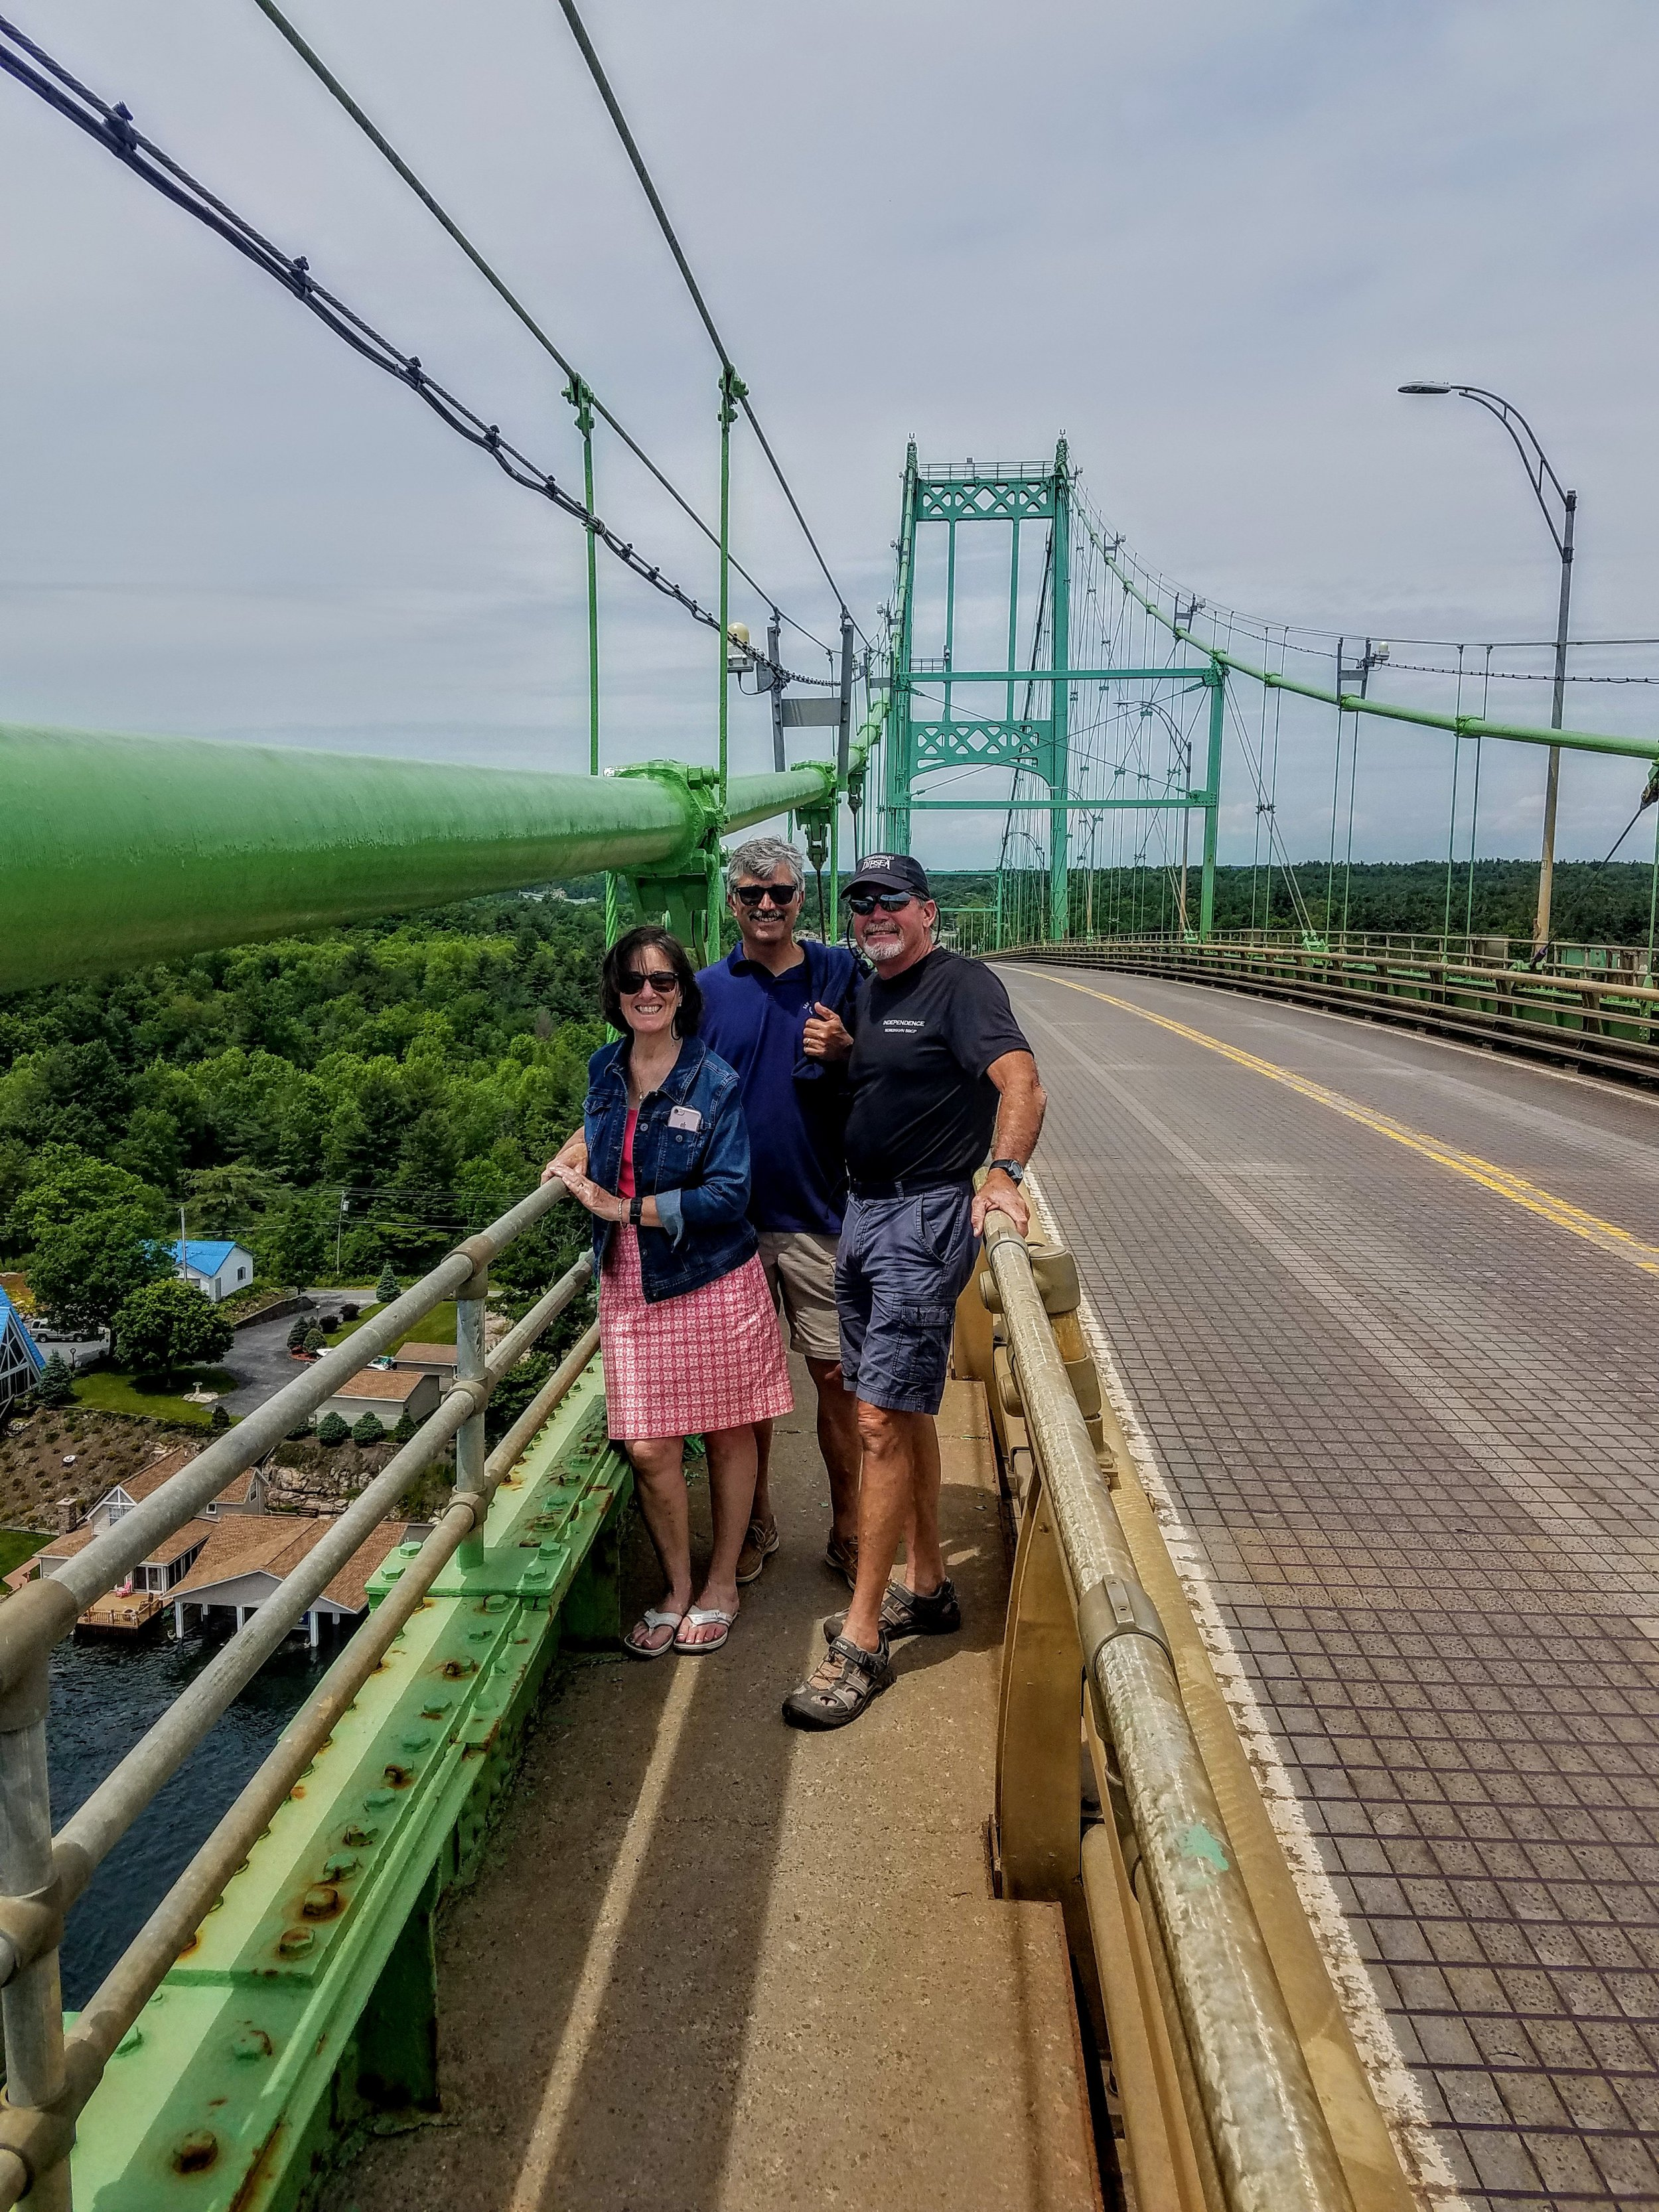 A stroll over the Thousand Islands Bridge